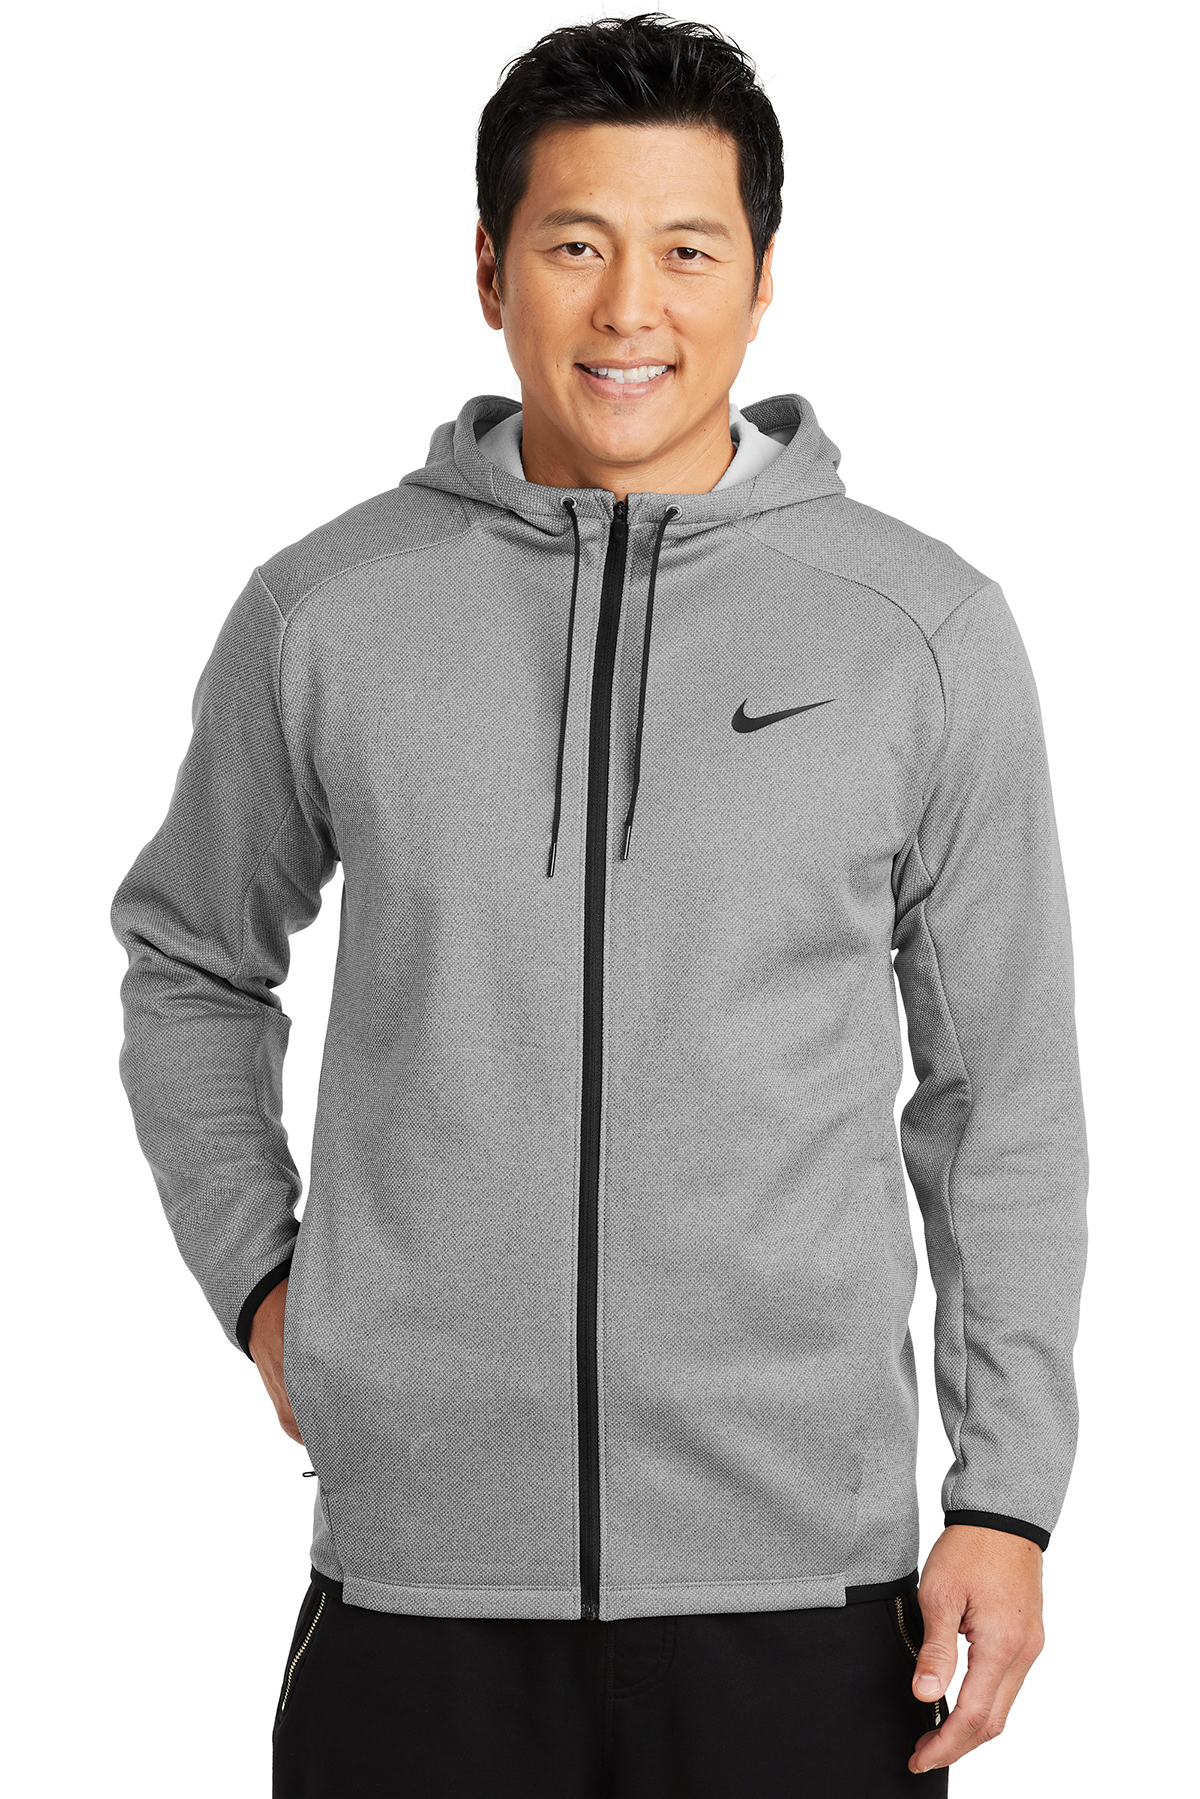 c6ba6d8bb Nike Therma-FIT Textured Fleece Full-Zip Hoodie | Hoodie ...